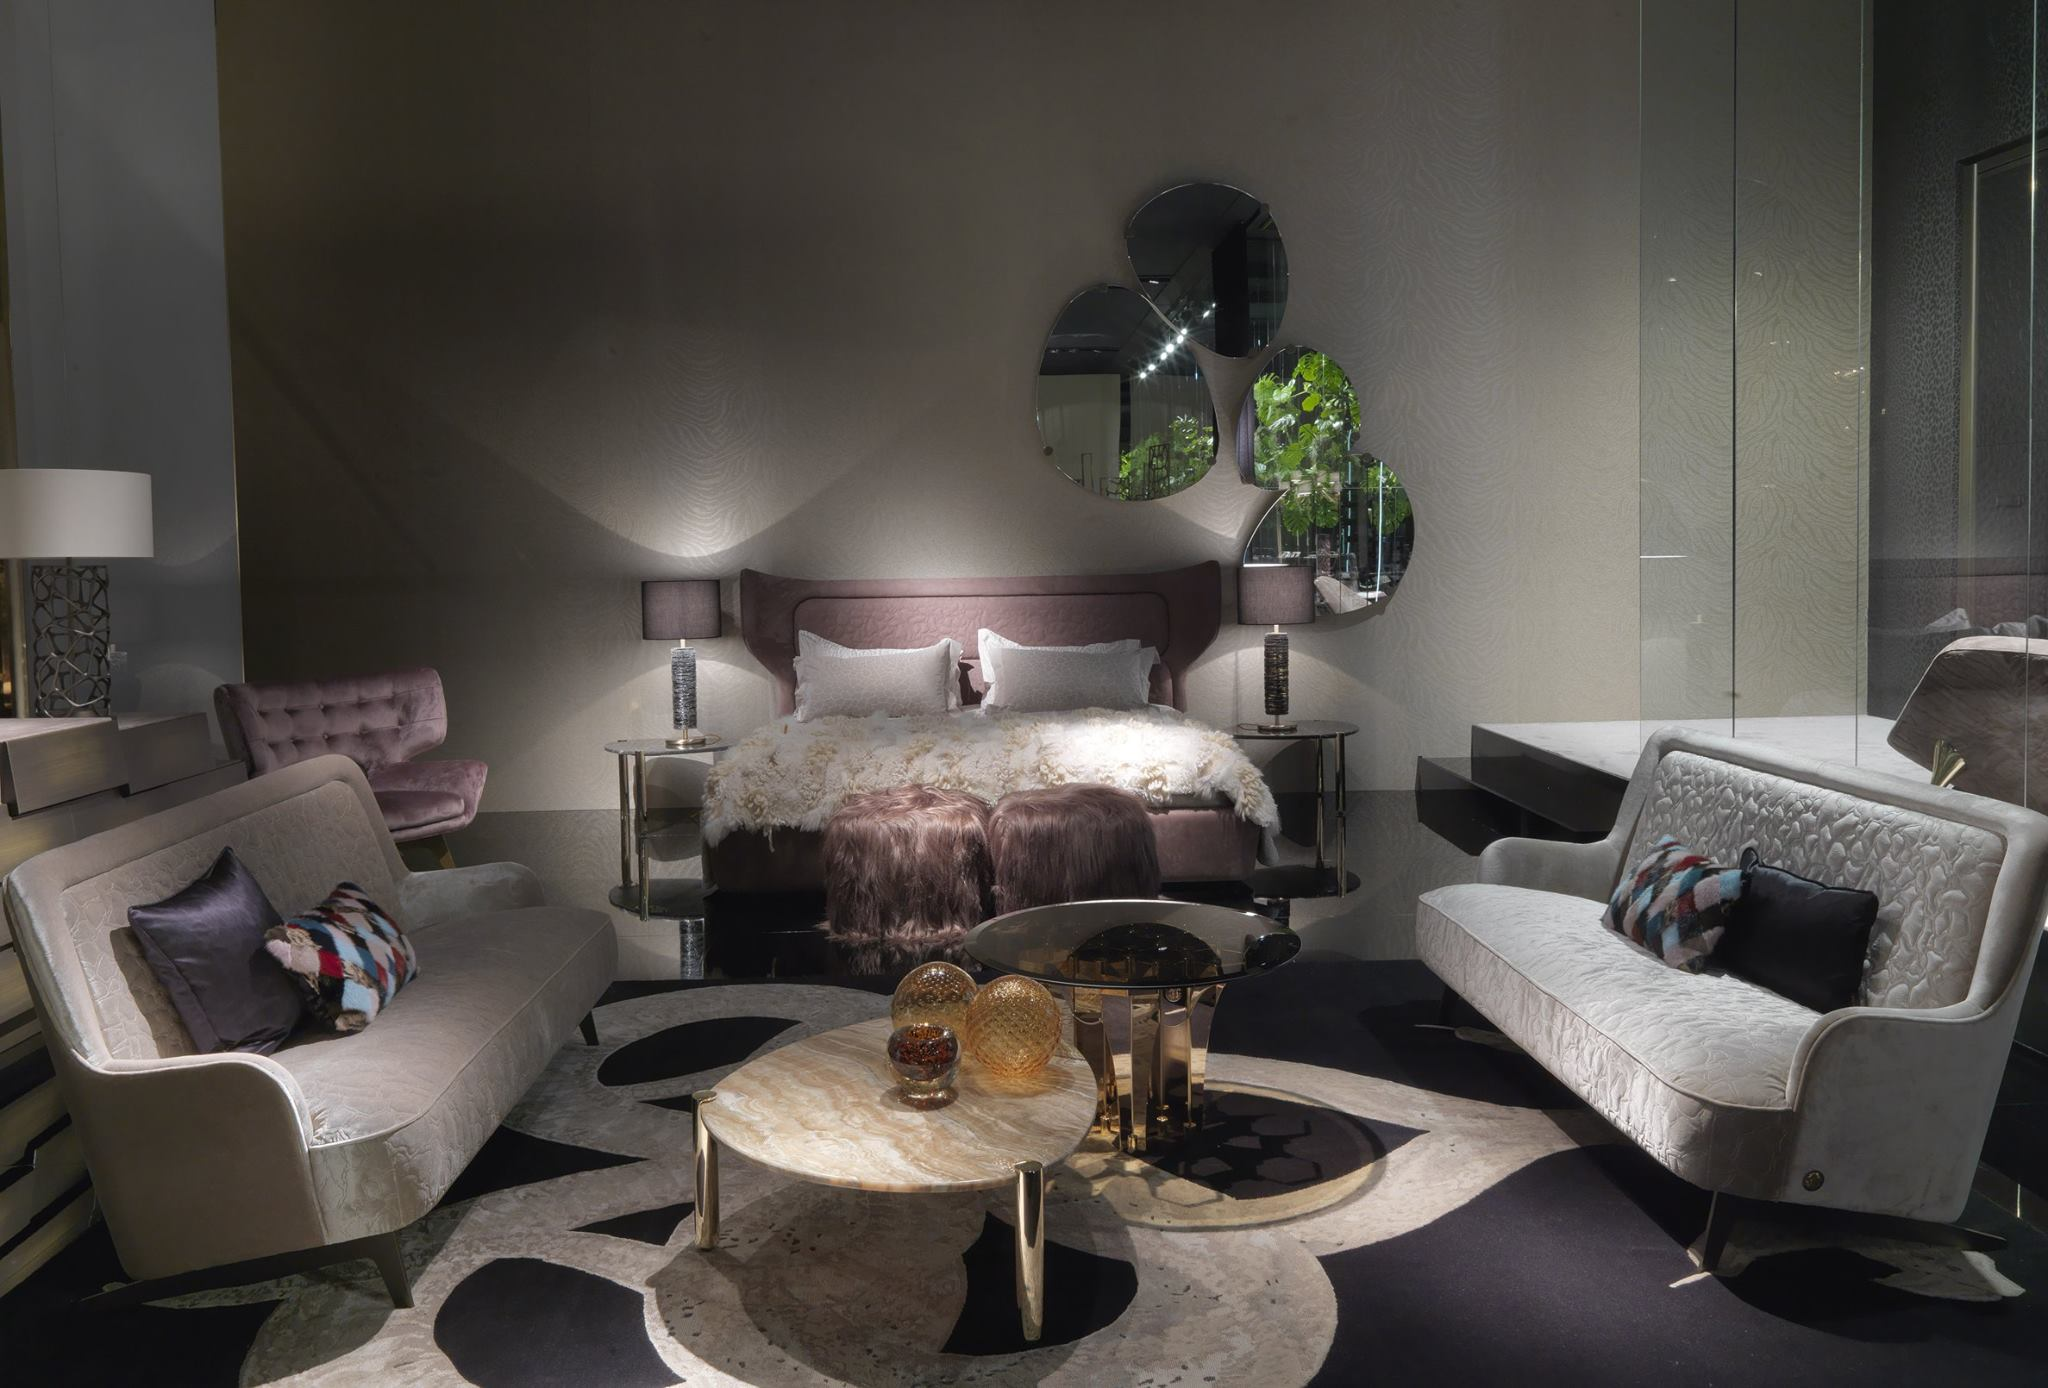 Perfetto Luxury Interiors Spends Time at Salone del Mobile Milano 4